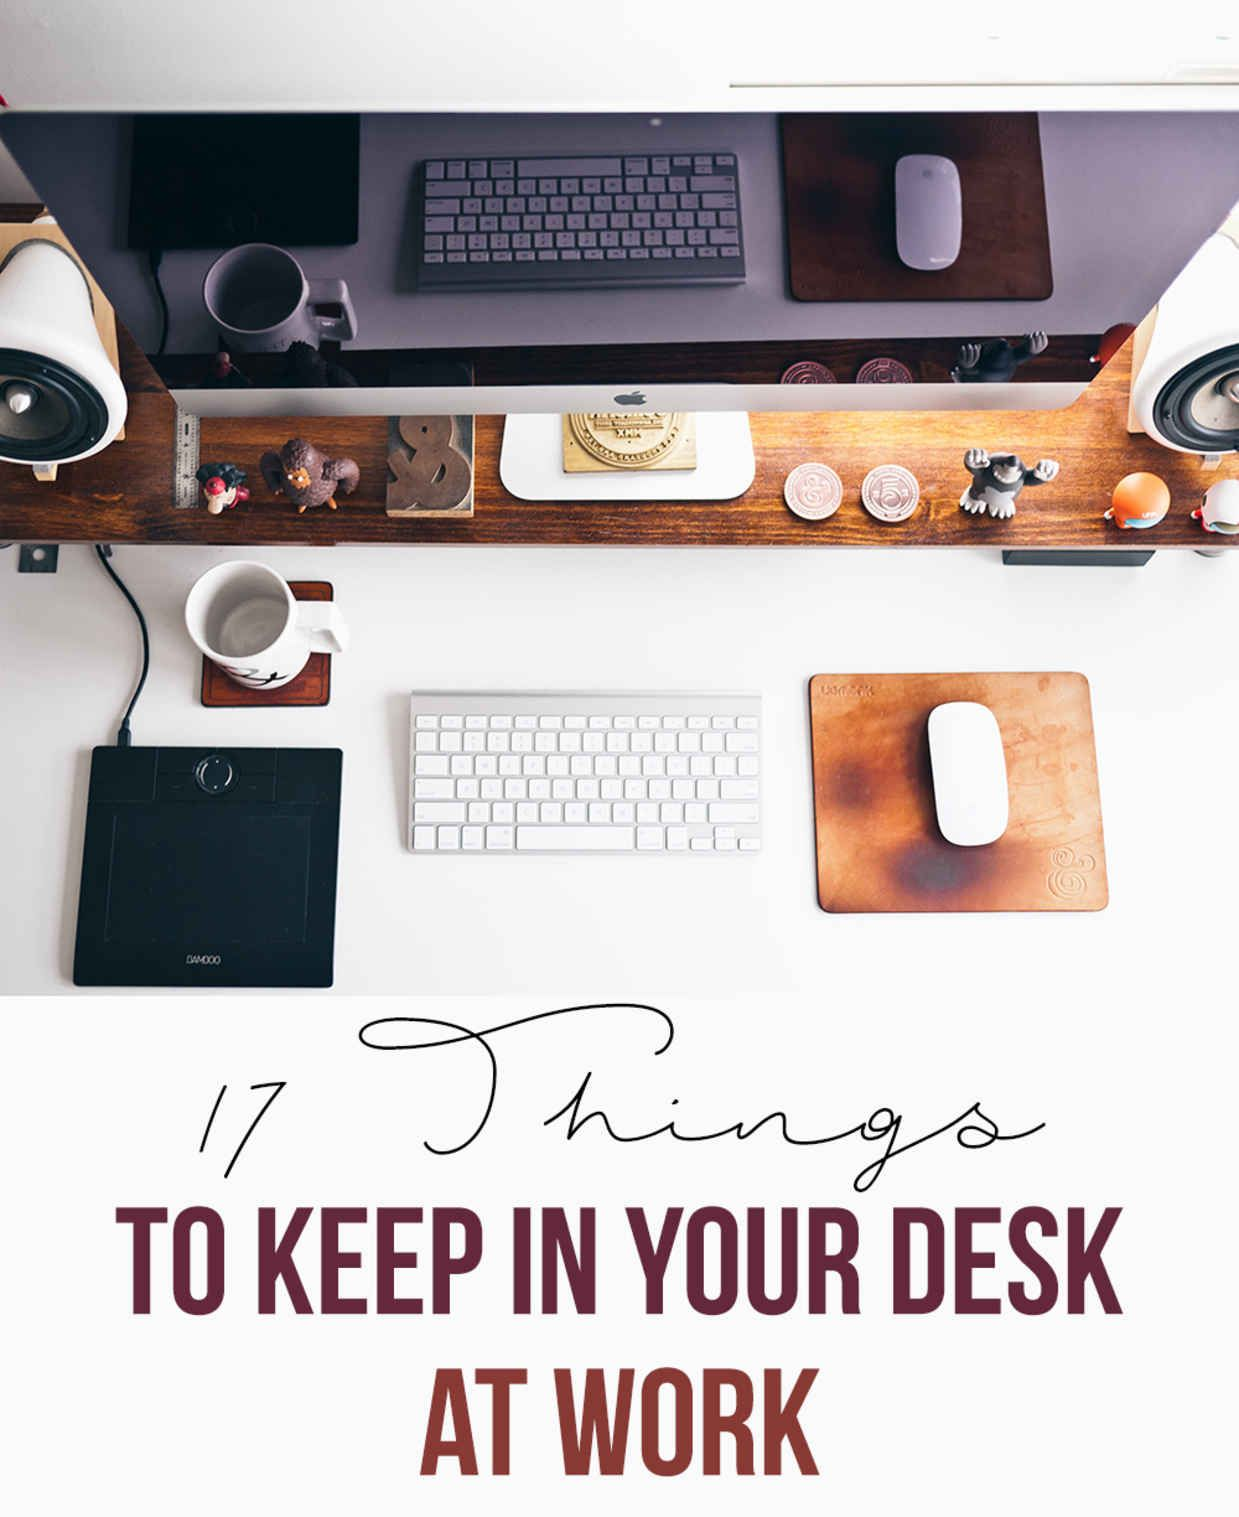 office cubicle organization. 17 Things To Keep In Your Desk At Work Office Cubicle Organization